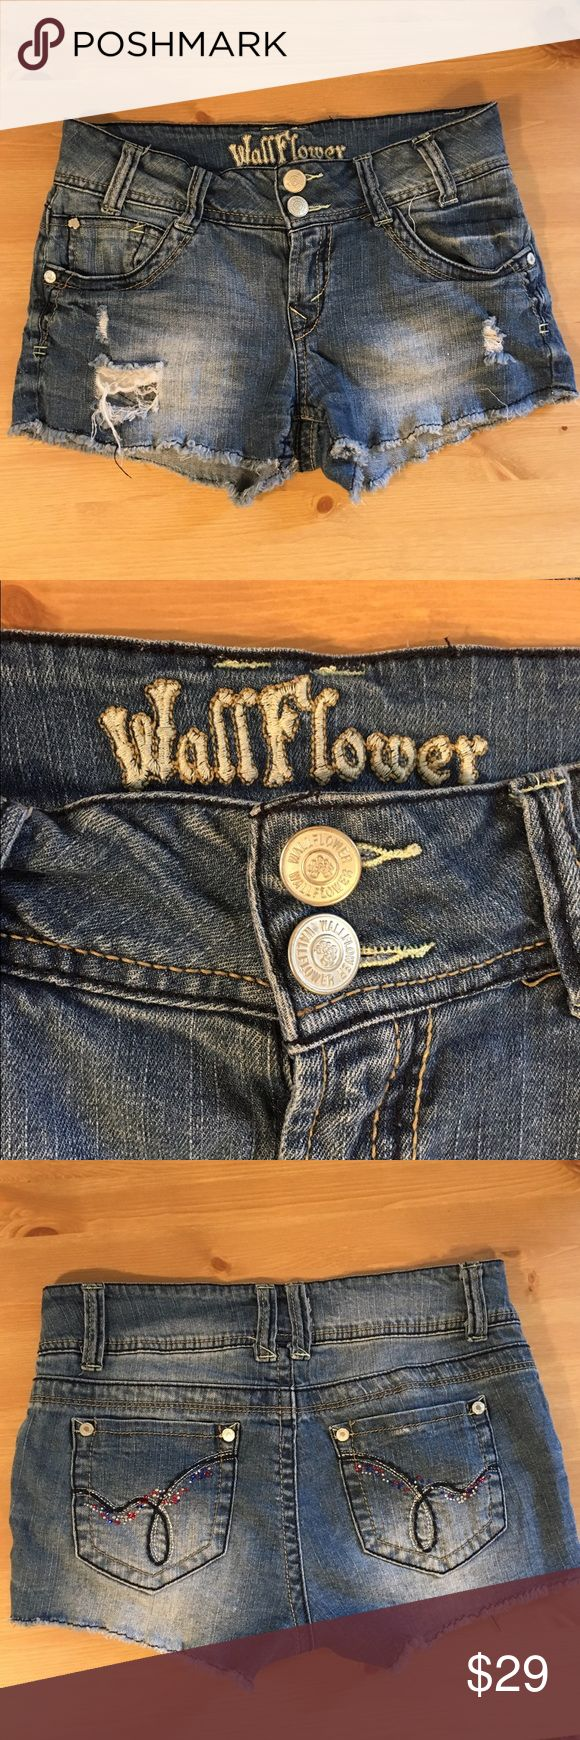 ✨WallFlower Jean Shorts✨ WallFlower jean shorts made of indigo denim with a tint finish, distressed details on the front with red, white, and blue bling details on the back pockets. Size 5 Wallflower Shorts Jean Shorts